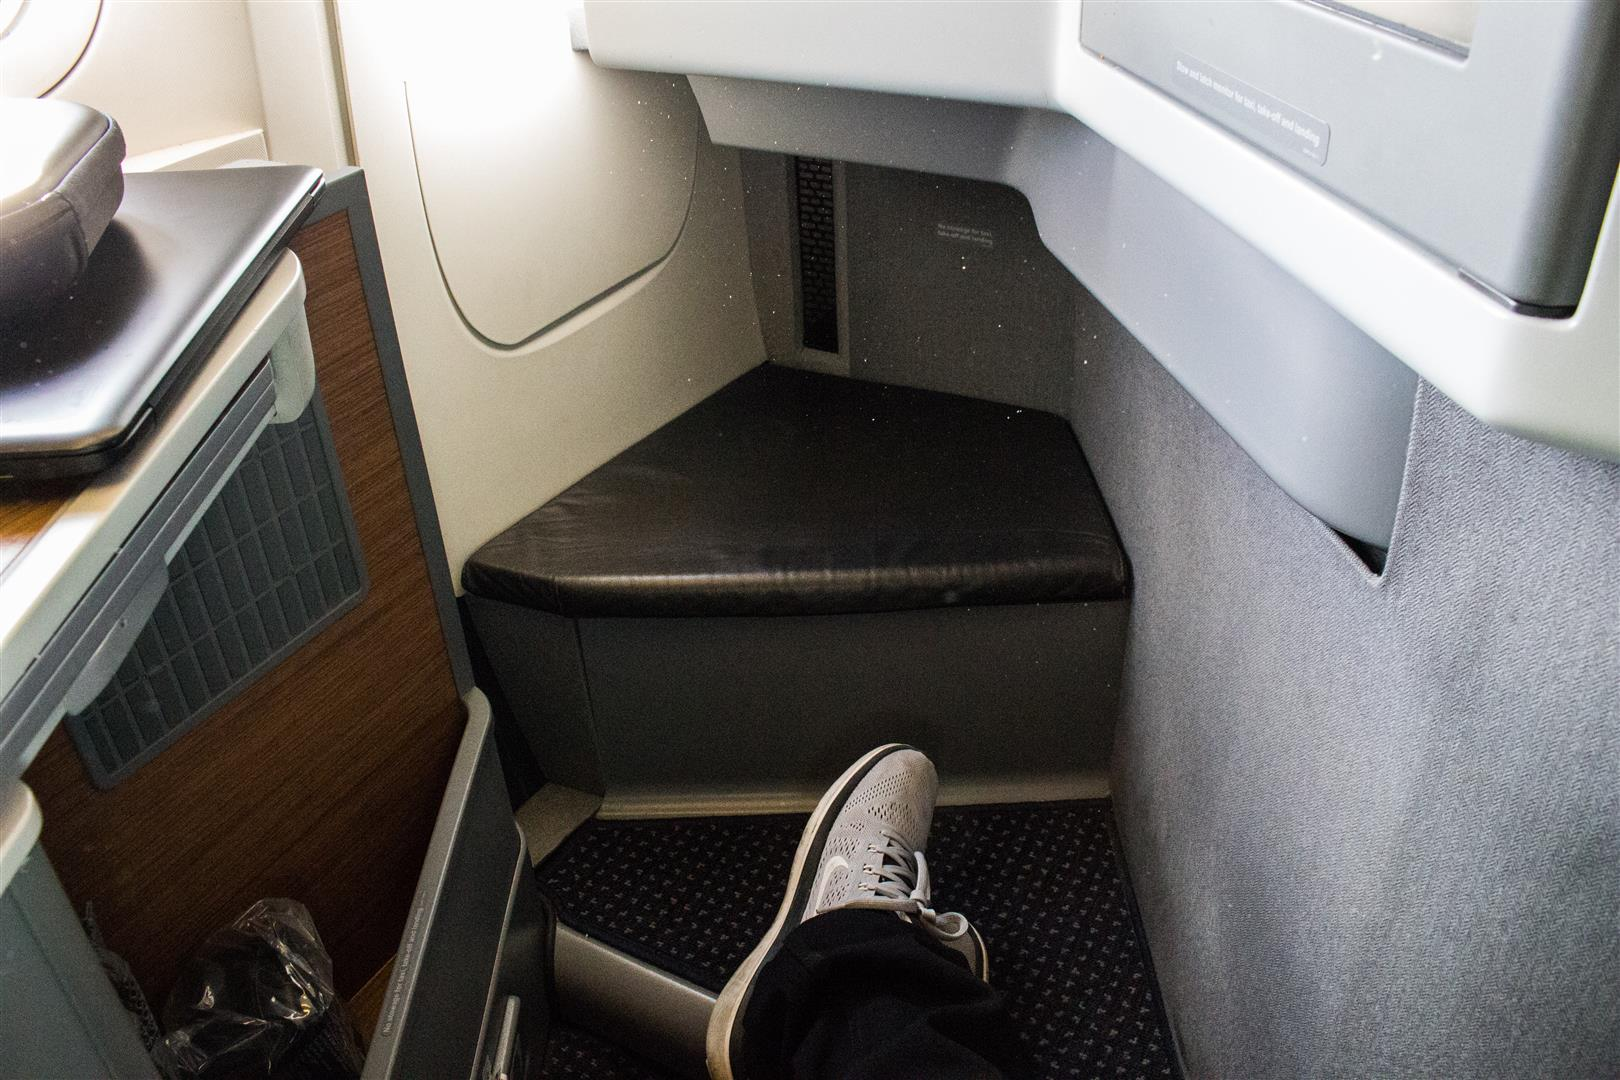 It goes without saying that Business Class almost has plenty of legroom.